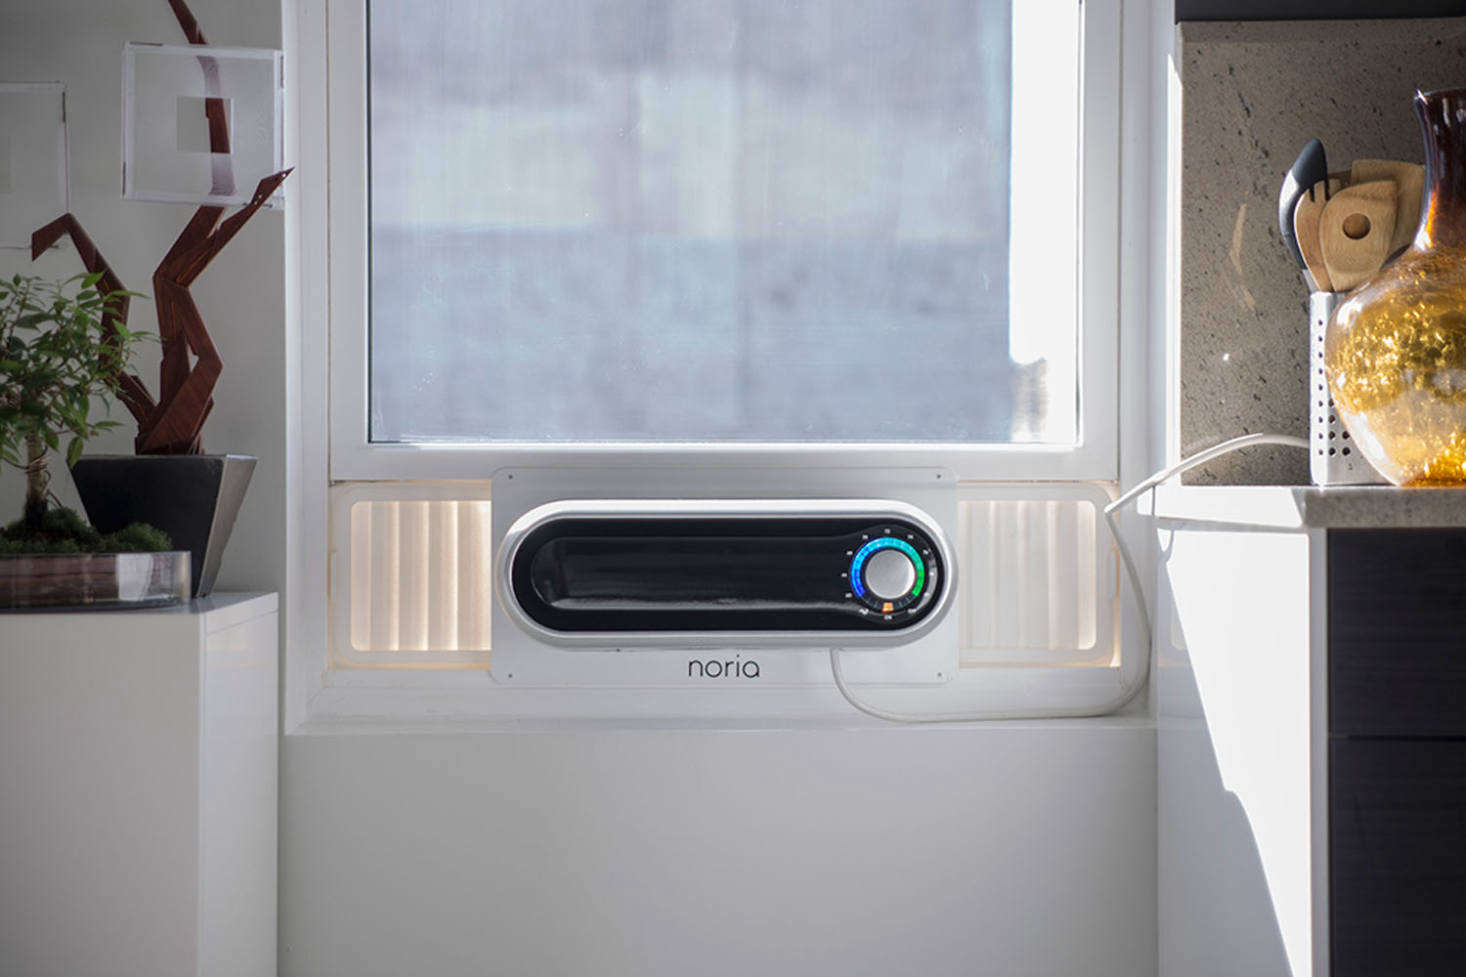 We're still awaiting the Kapsul which has been released in waves for Kickstarter donors. The 5,000 BTU air-conditioning window unit, originally called Noria, raised almost $src=